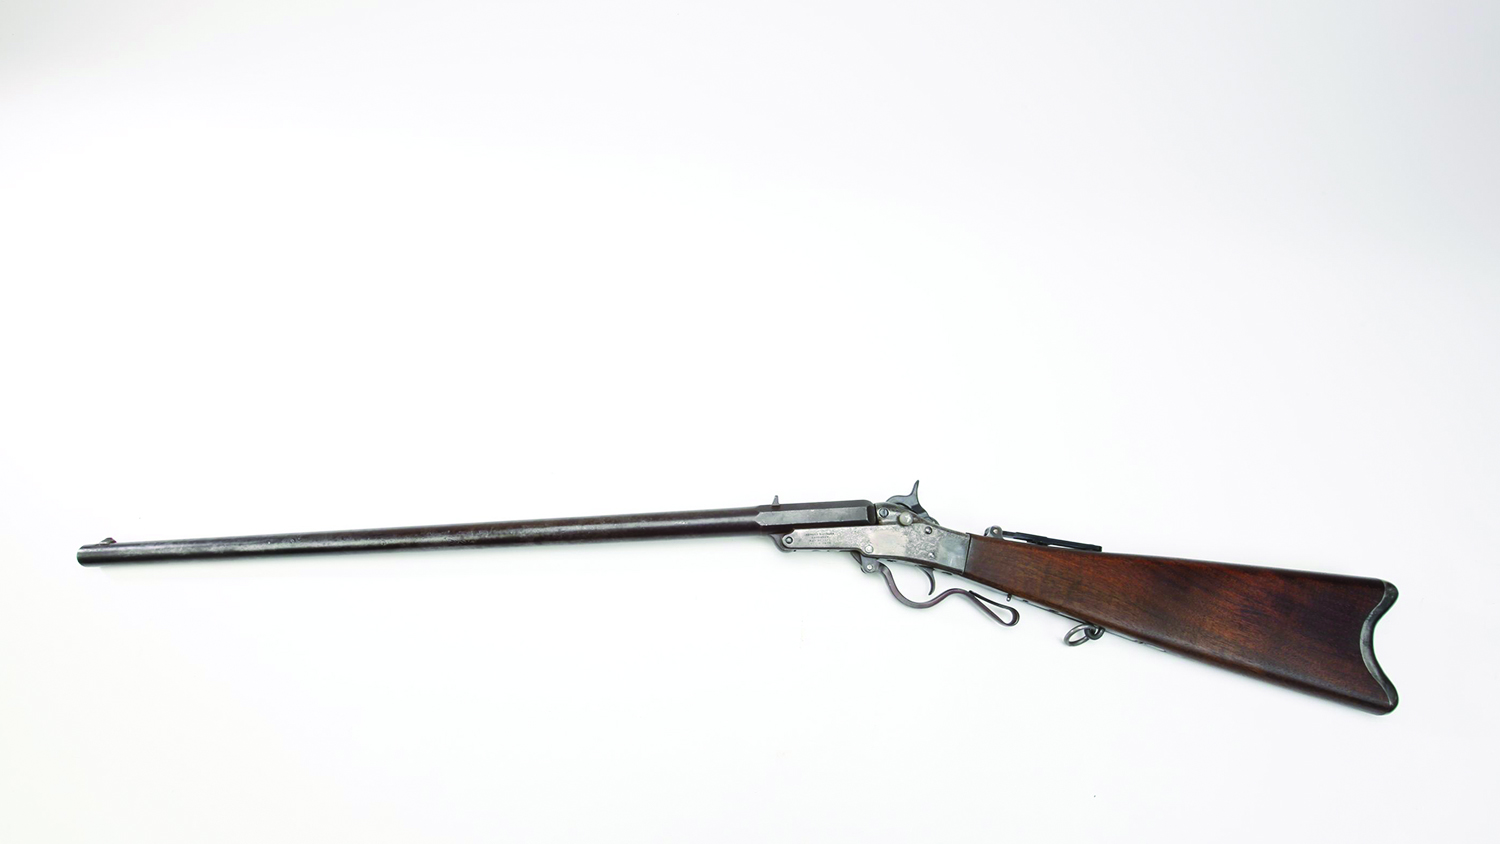 Gun of the Day: Early Maynard Rifle